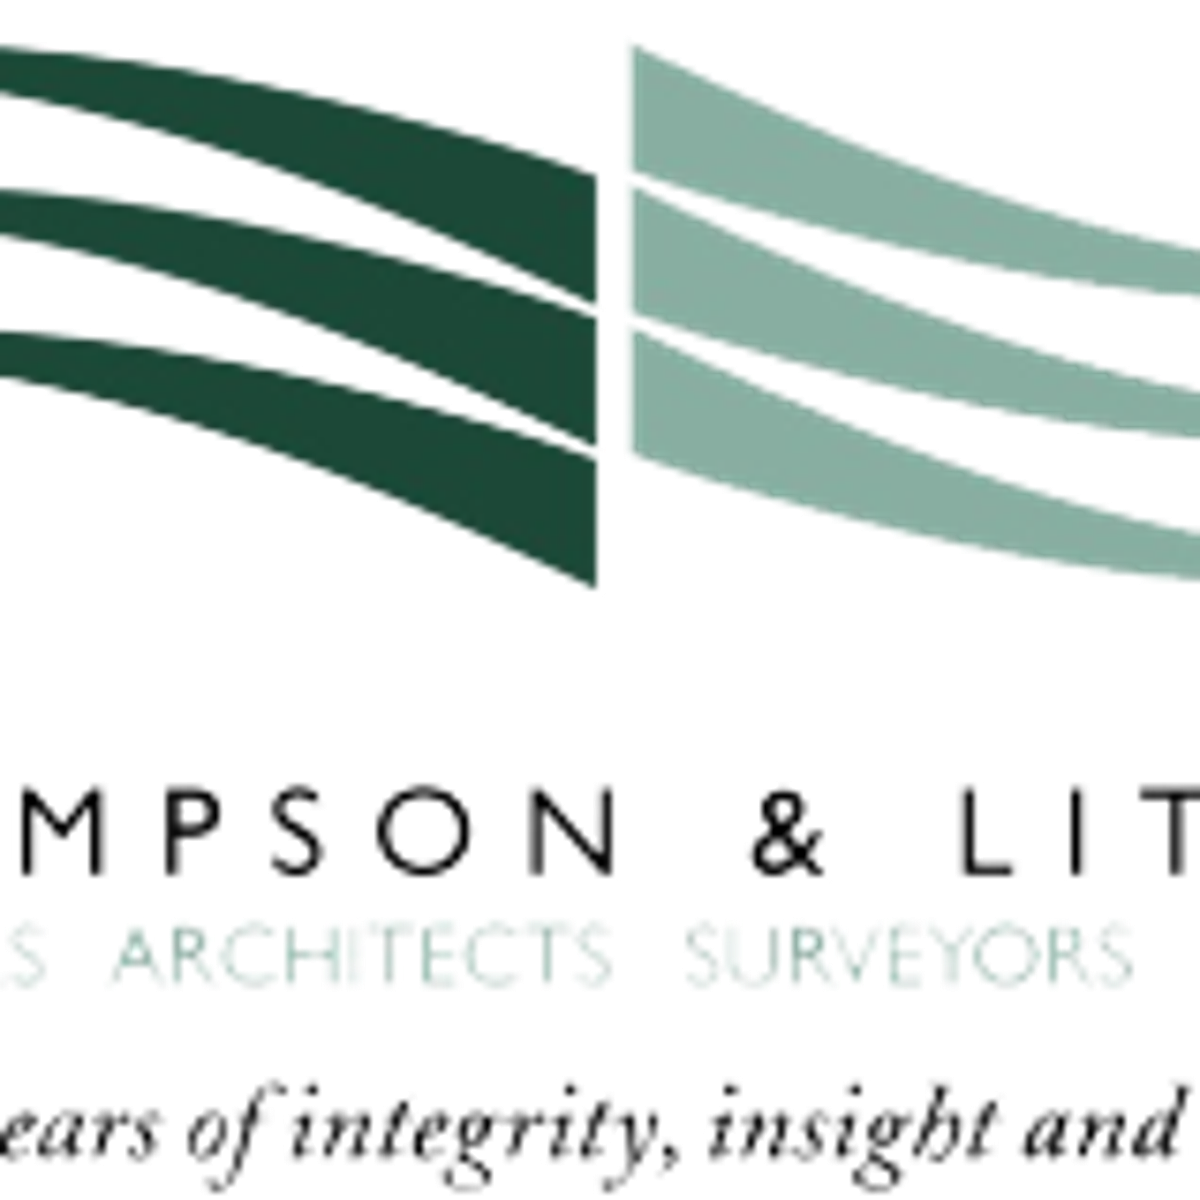 Thompson & Litton expands project focus, leadership team